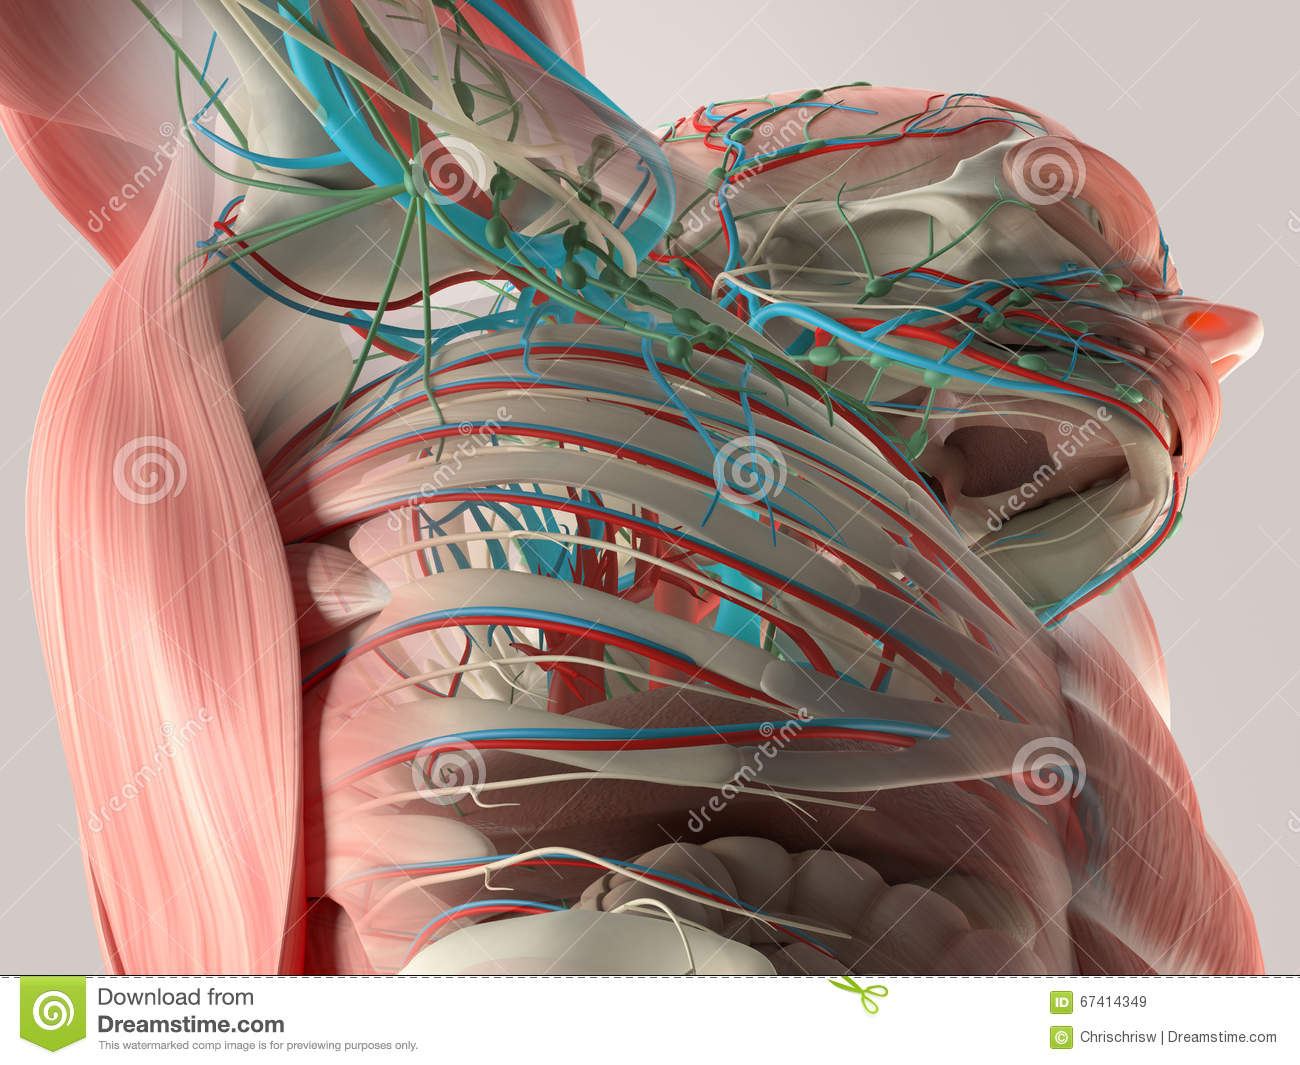 hight resolution of human anatomy detail of back spine bone structure muscle on plain studio